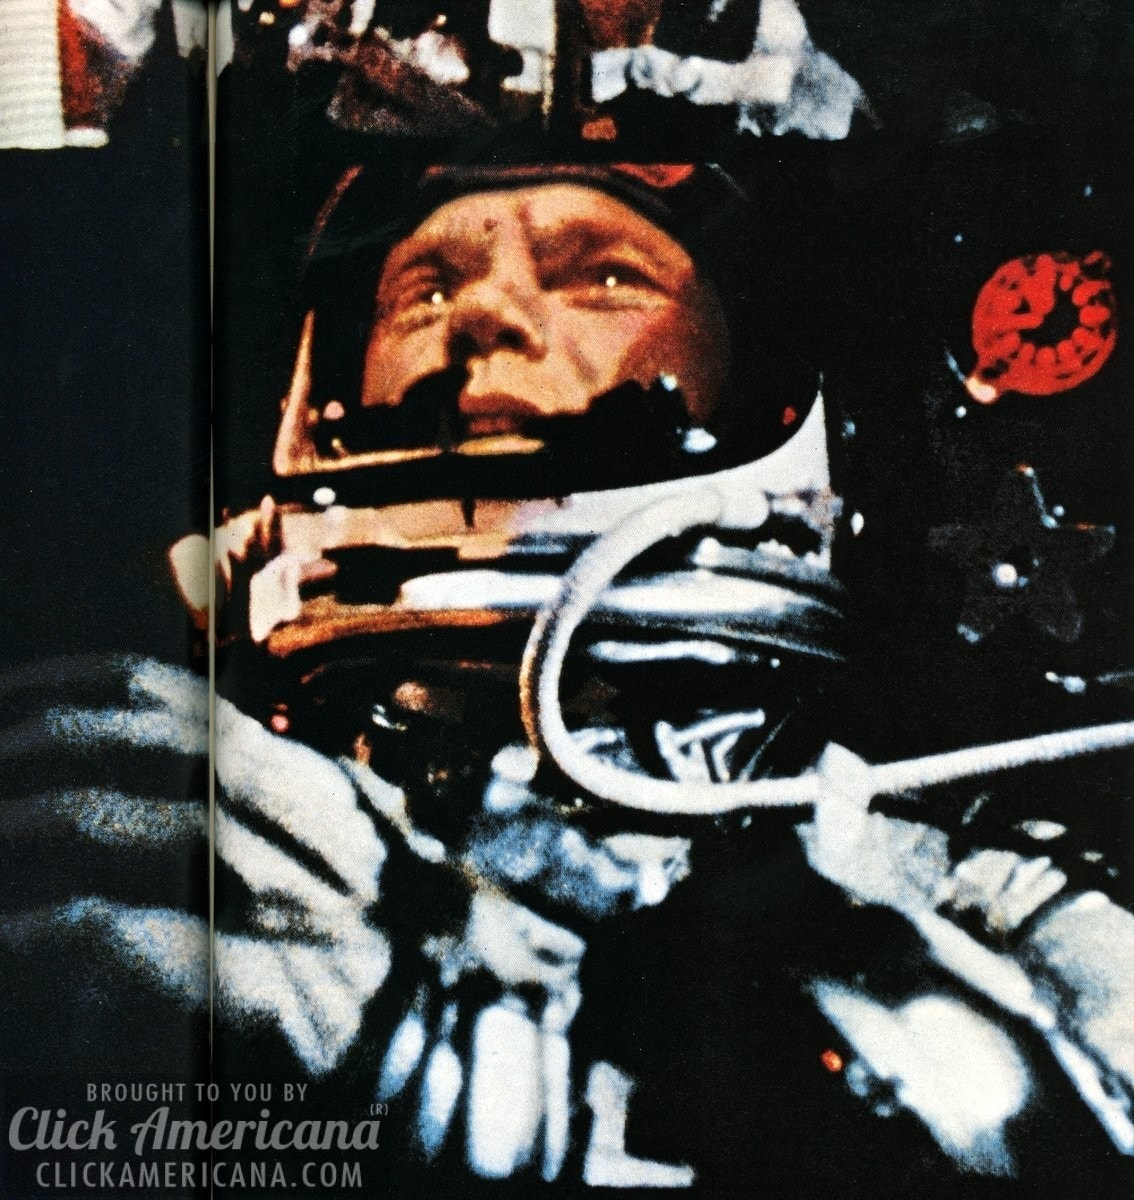 John Glenn's three orbits in Friendship 7 (1962)